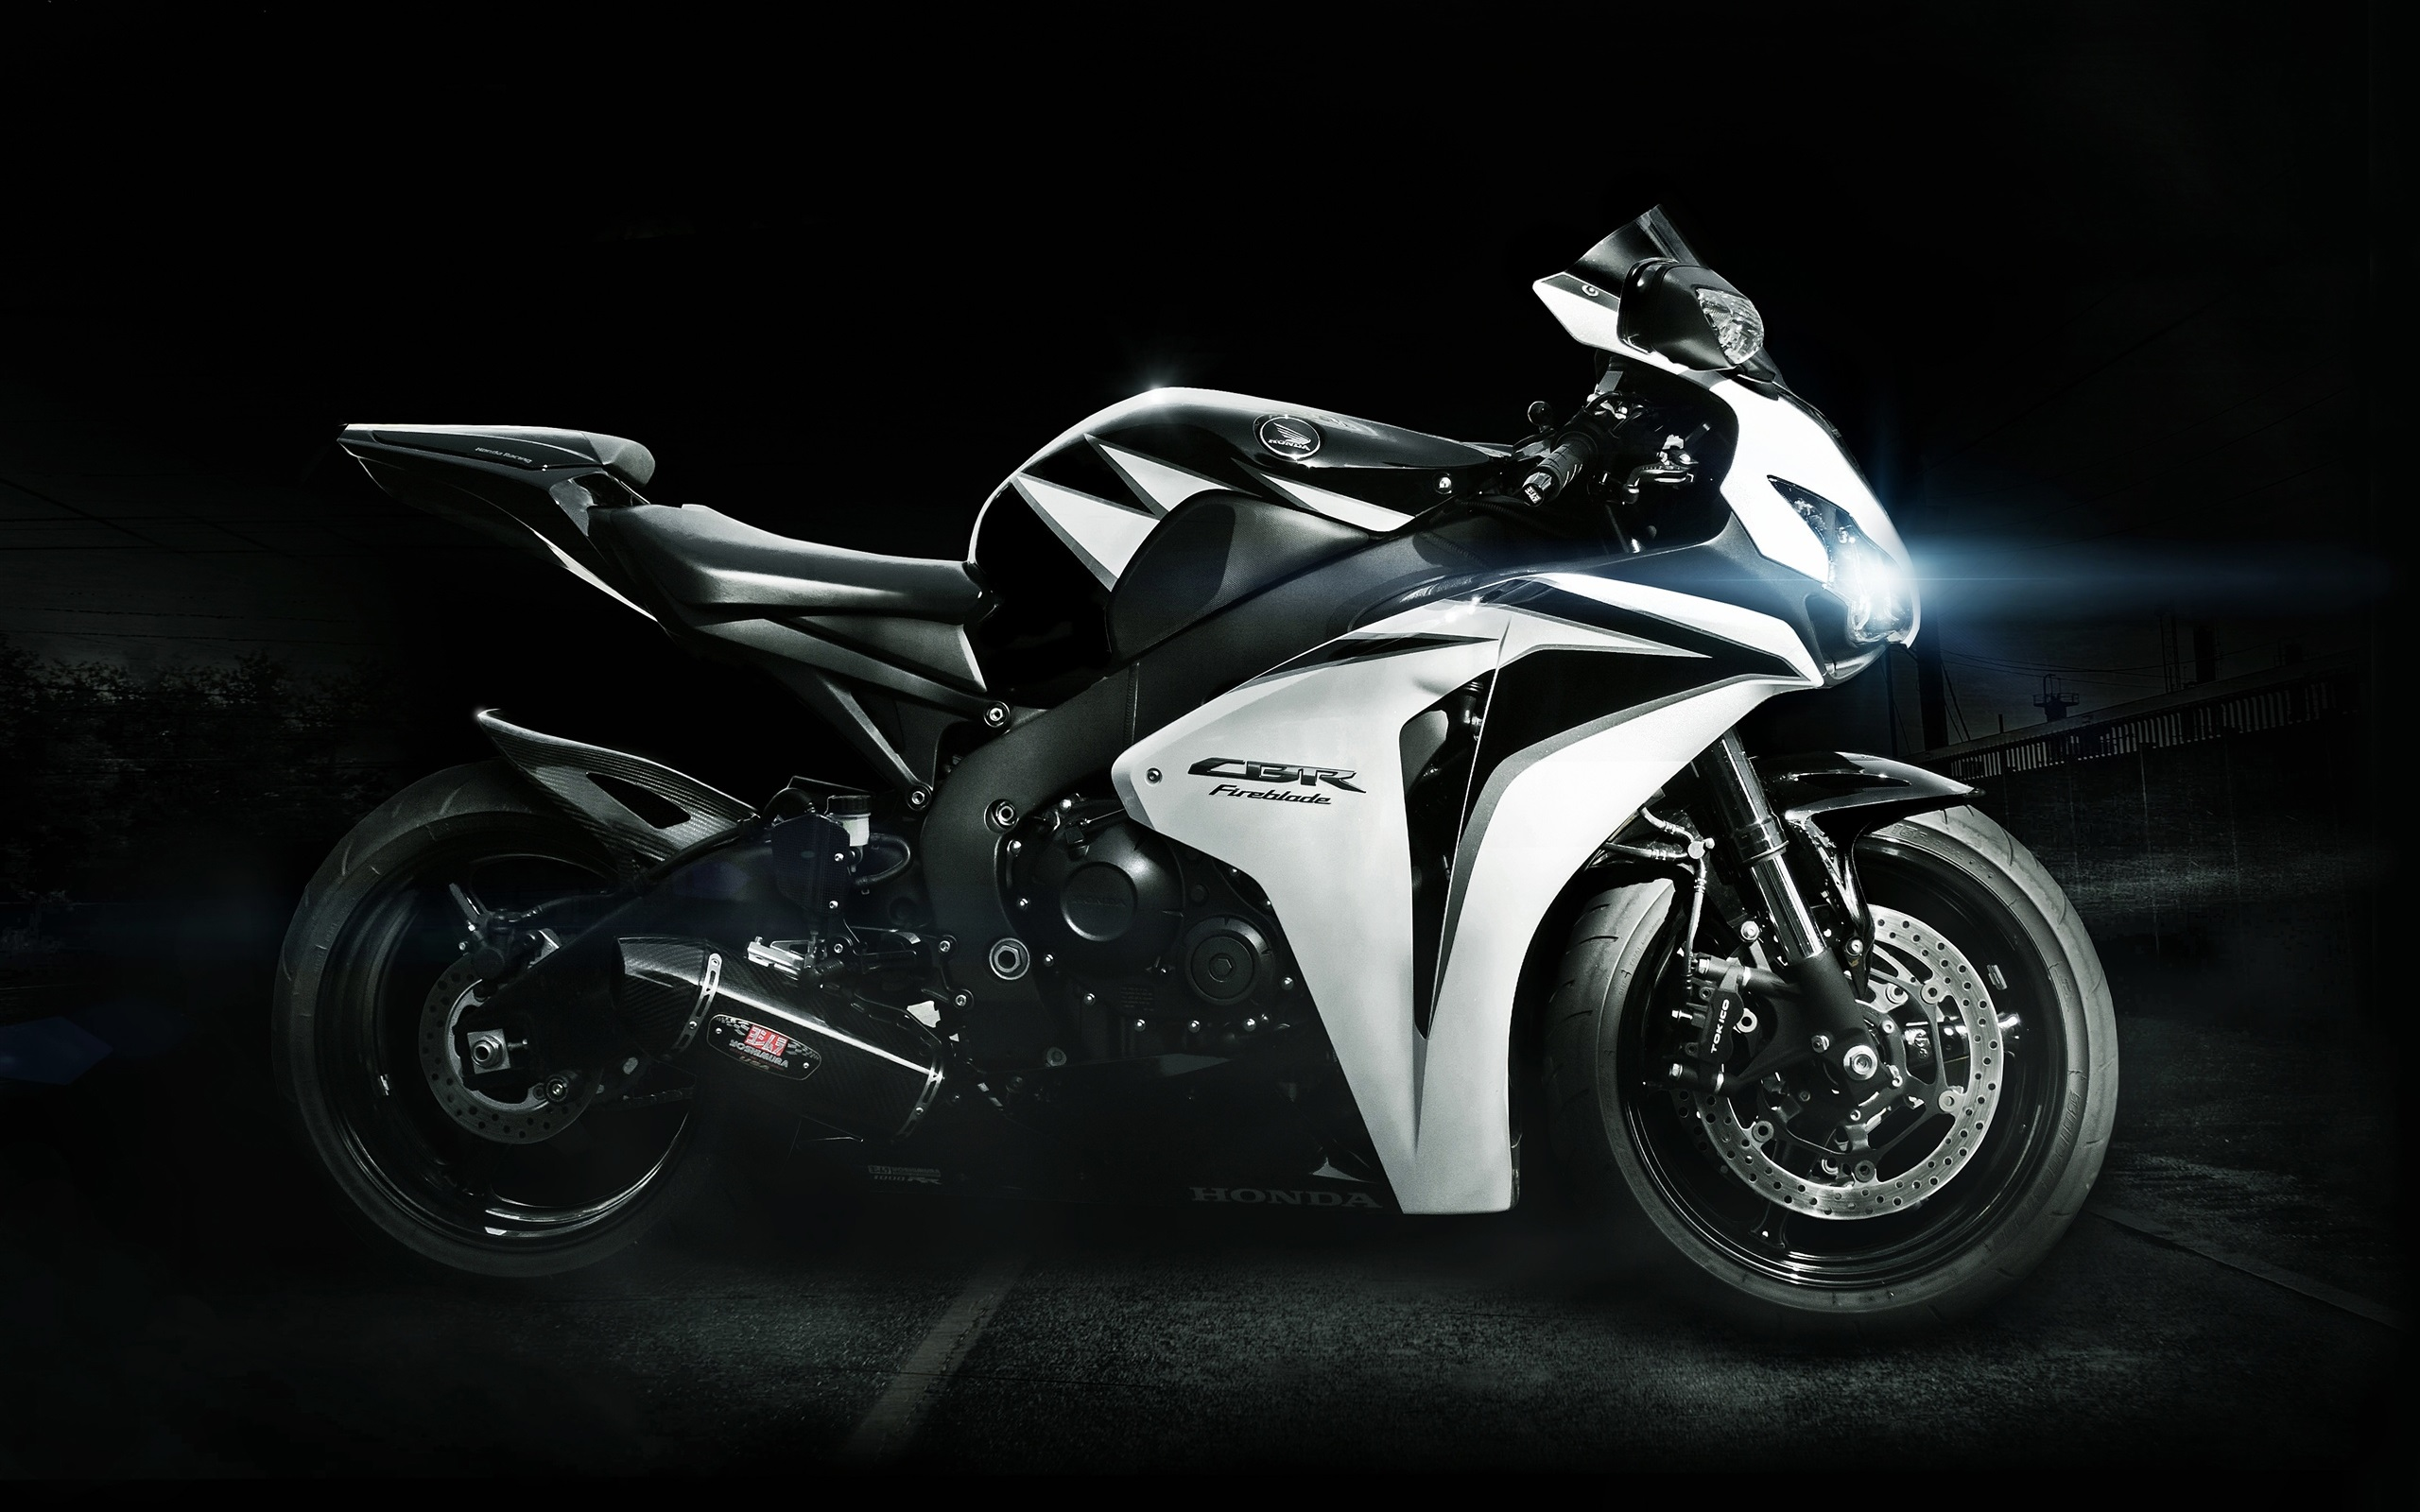 Wallpaper Honda Cbr Motorcycle 2560x1600 Hd Picture Image